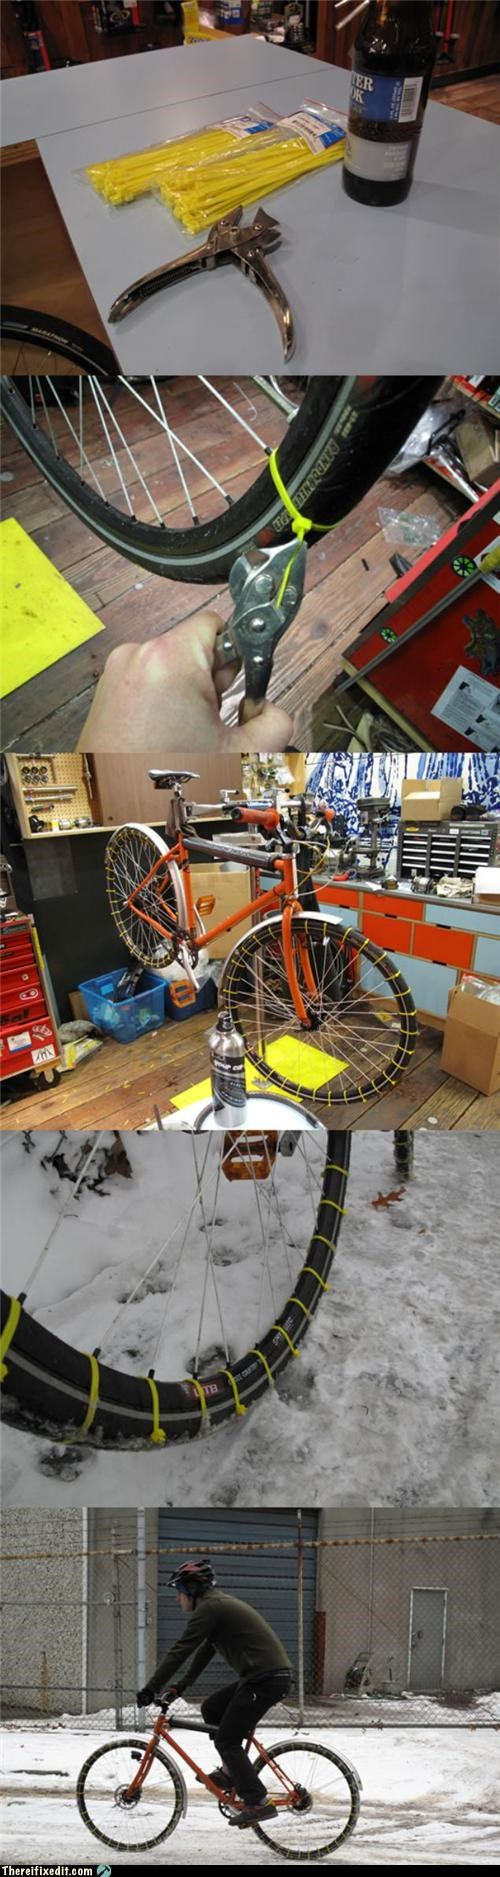 beer bicycles Follow Up snow tire winter zip tie - 4368972288